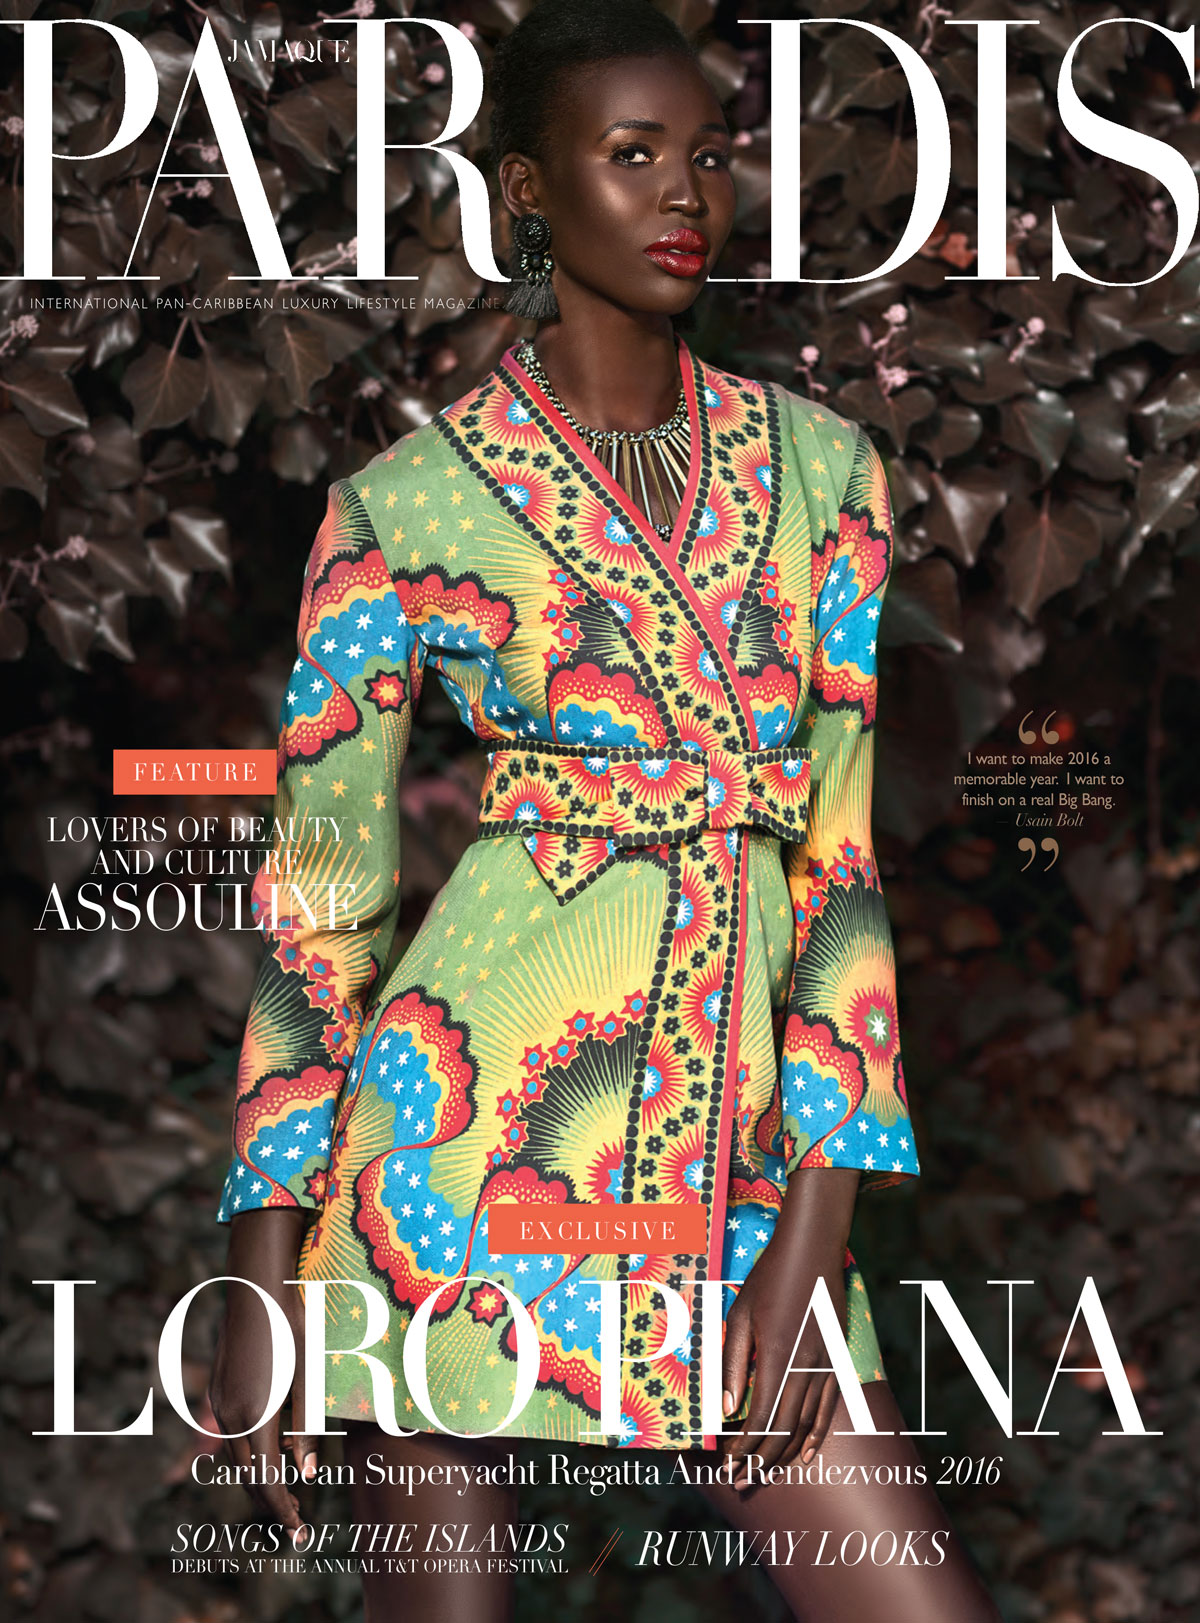 Fashion cover of Jamaque Paradis by Gustavo Chams featuring Nova Stevens